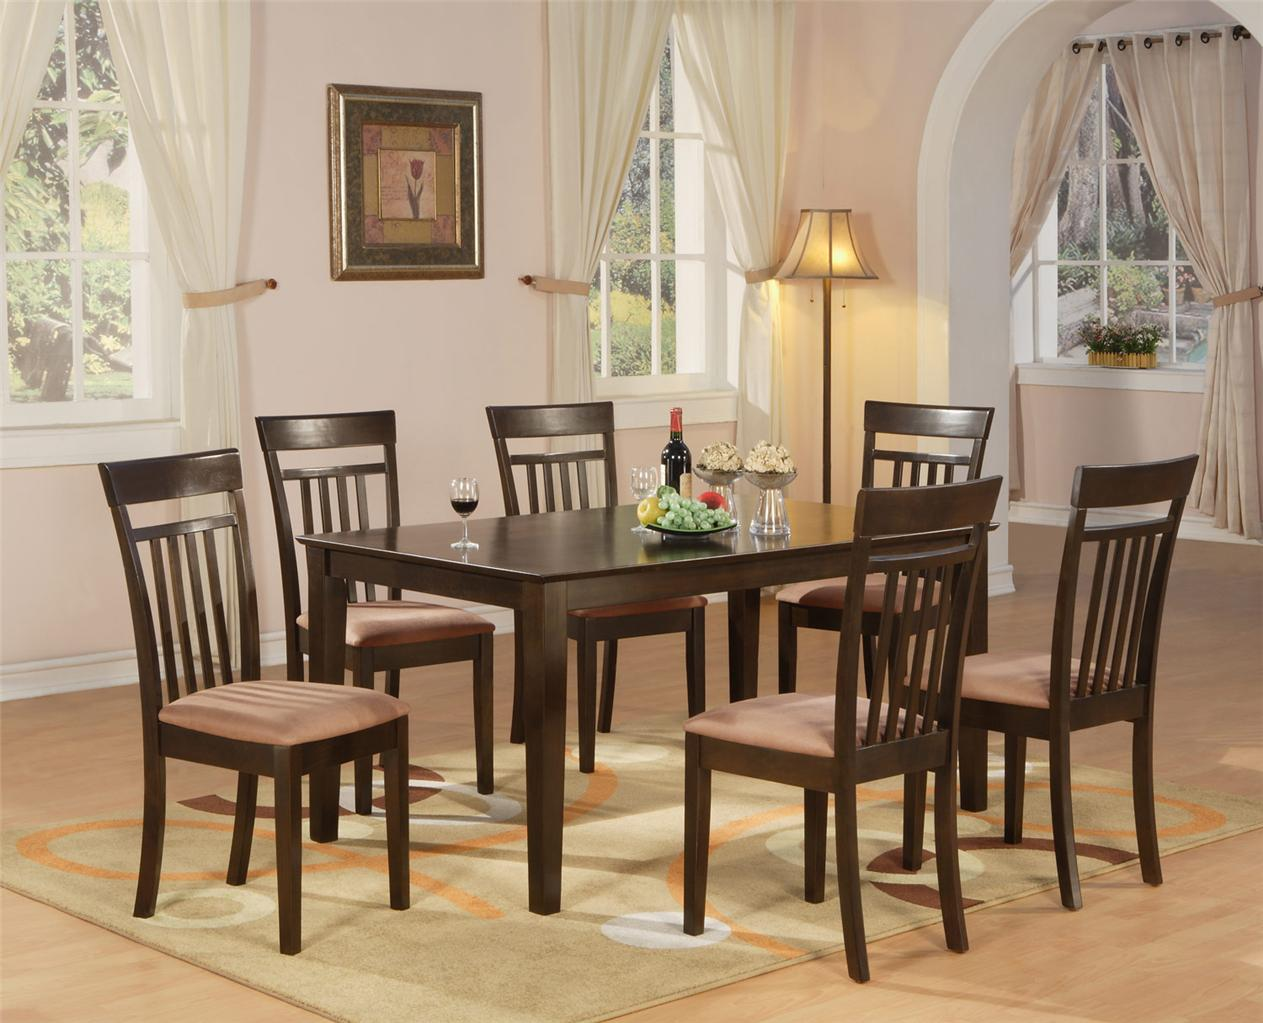 7 pc dining room dinette kitchen set table and 6 chairs ebay for Kitchen table set 6 chairs